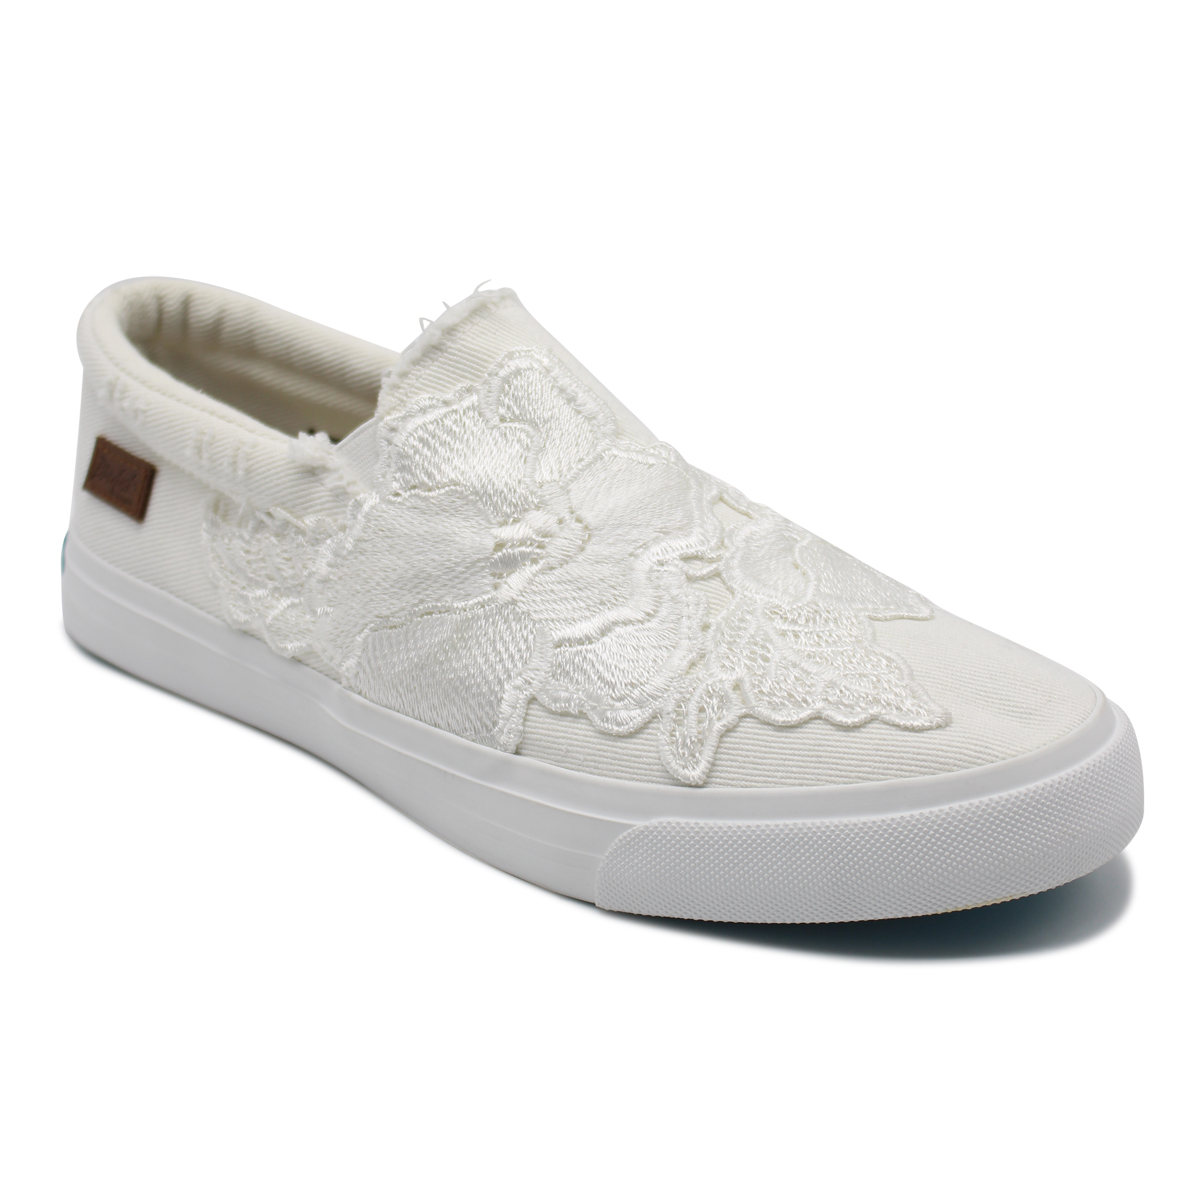 Slip-On Womens Sneakers With Lace Upper